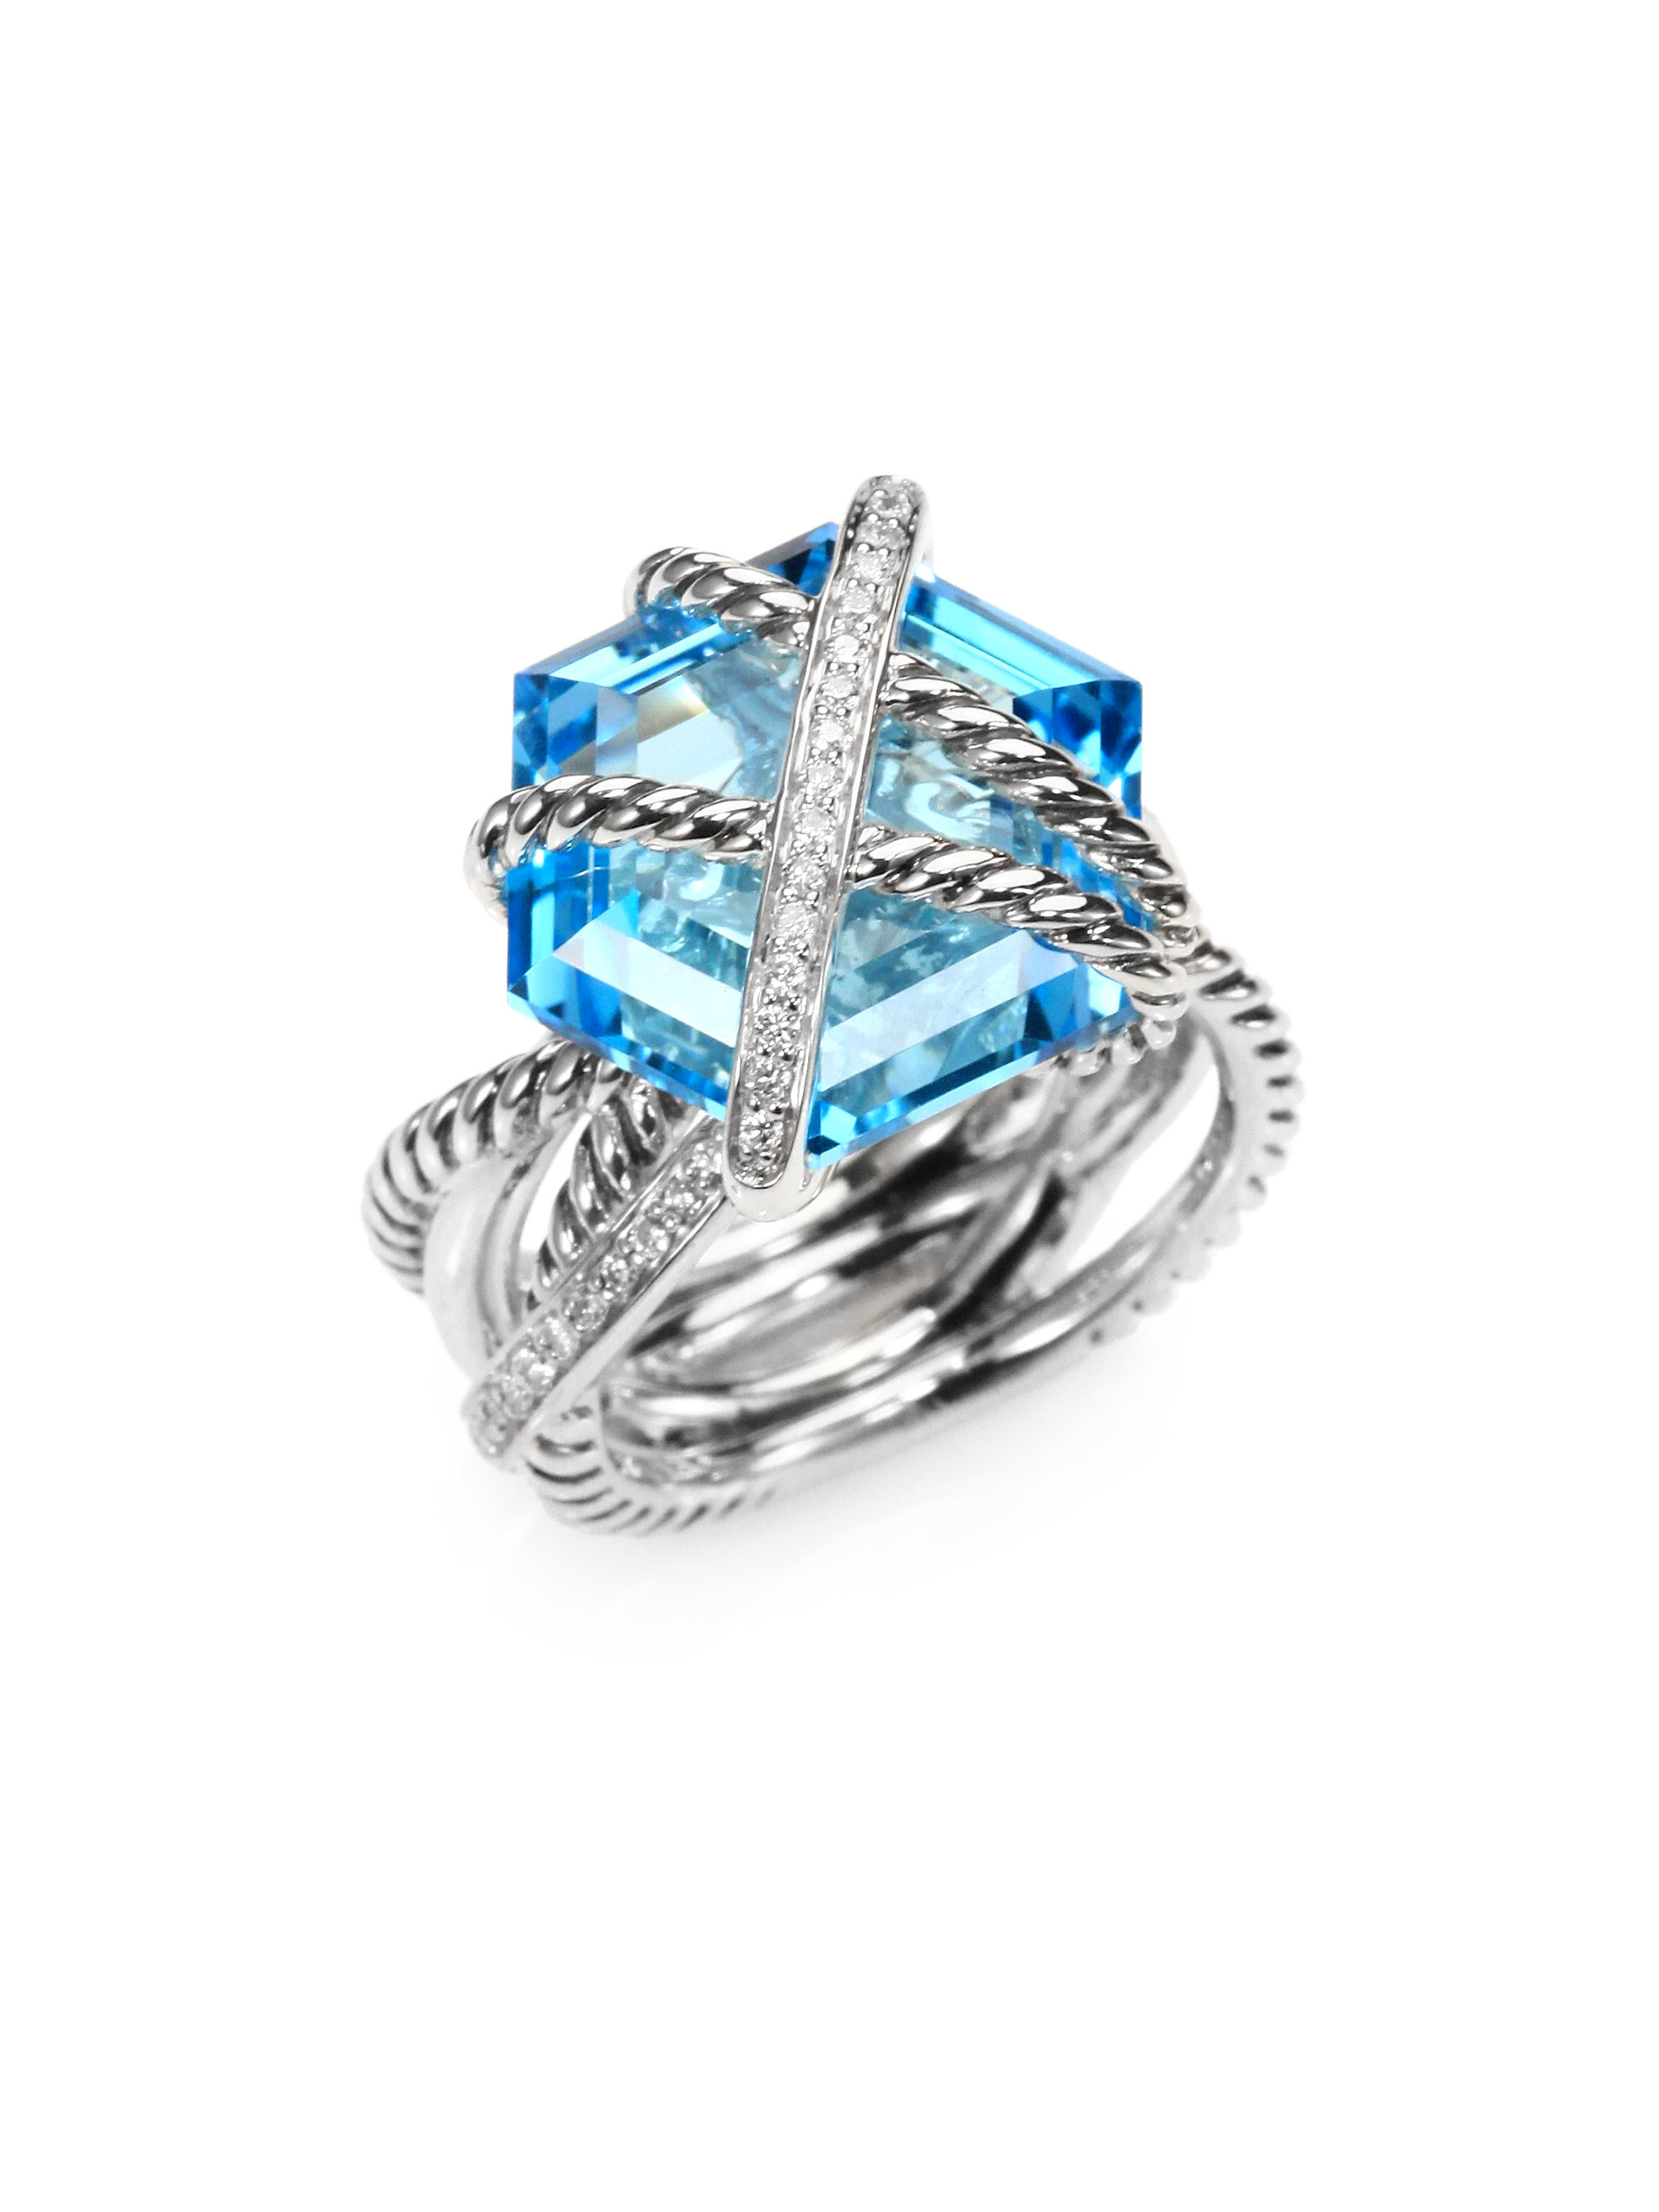 david yurman blue topaz and sterling silver ring